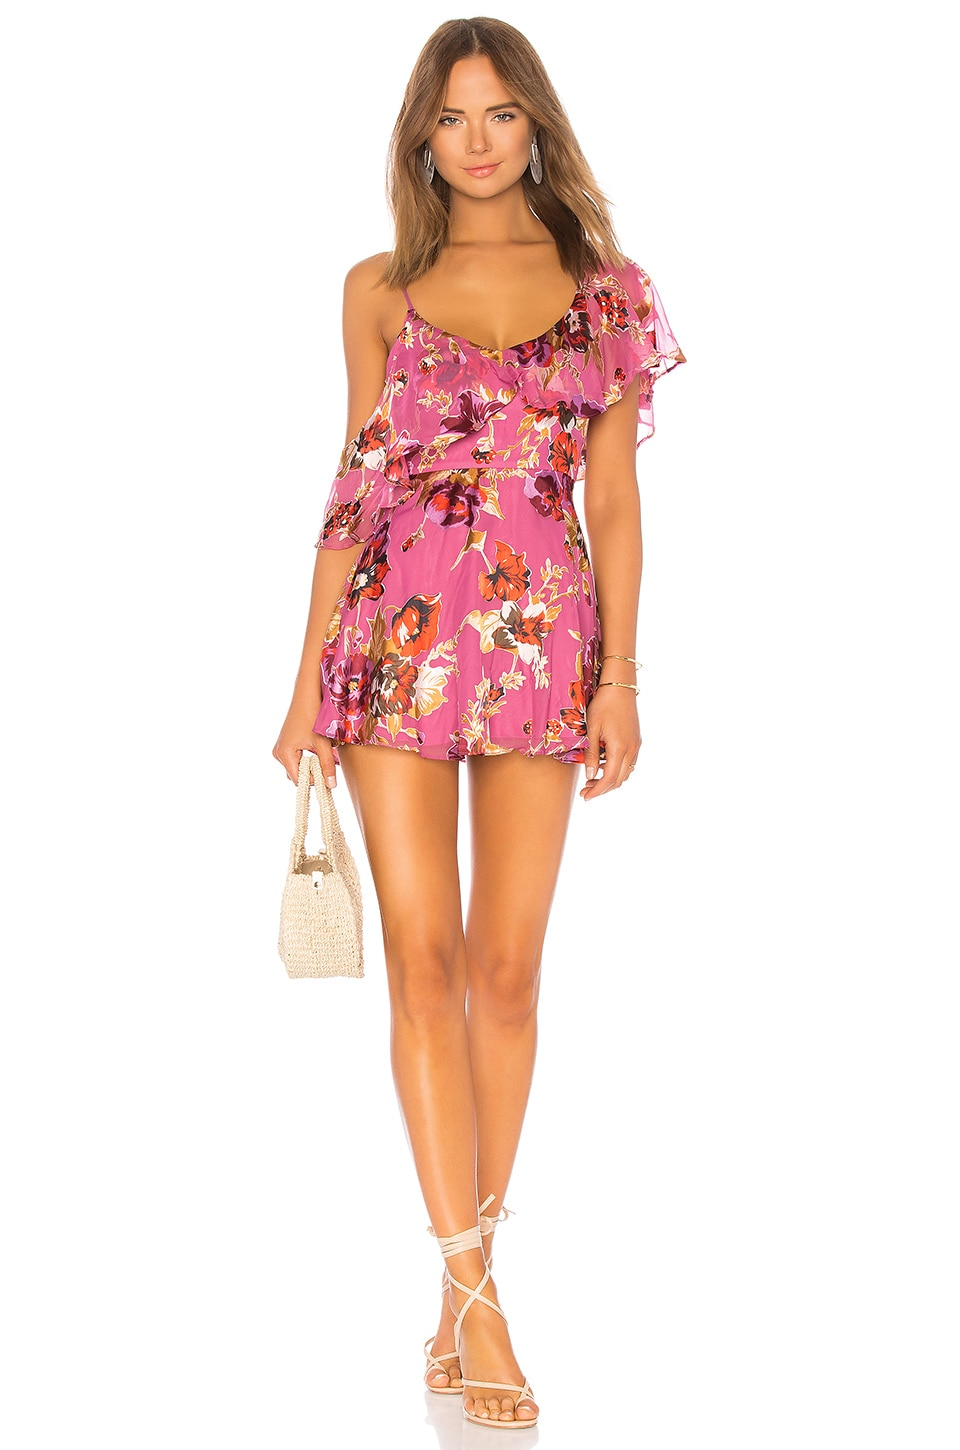 ale by alessandra x REVOLVE Xiomara Dress in Pink Blossom